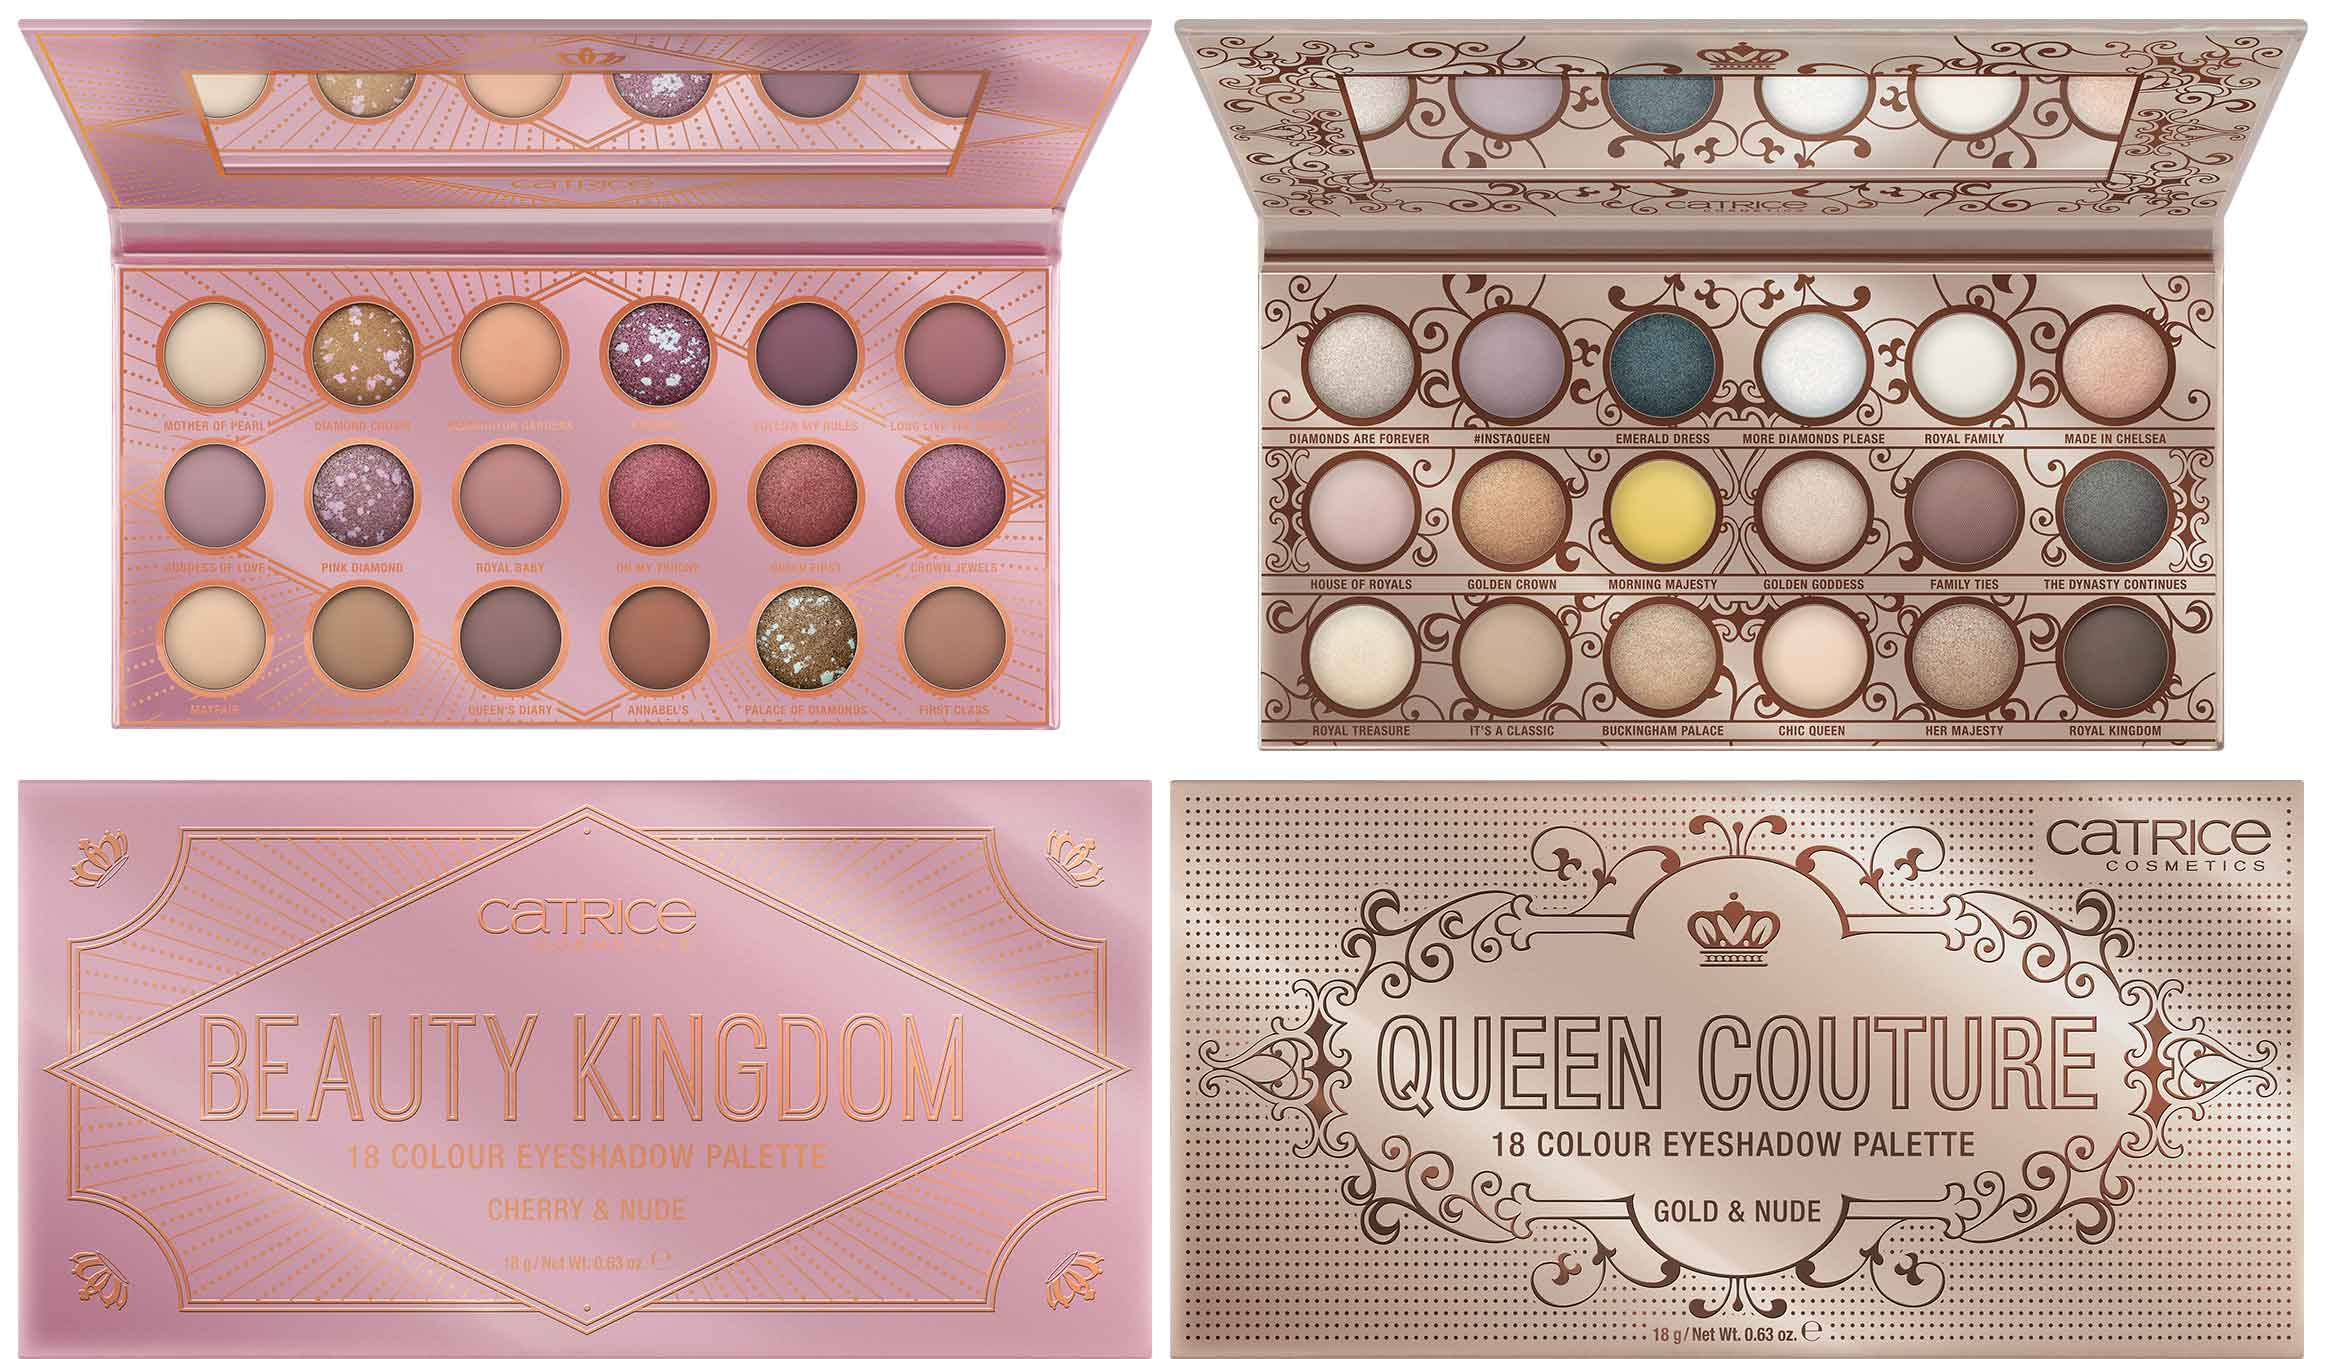 CATRICE-Queen-Couture-&-Beauty-Kingdom-Eyeshadow-Palettes